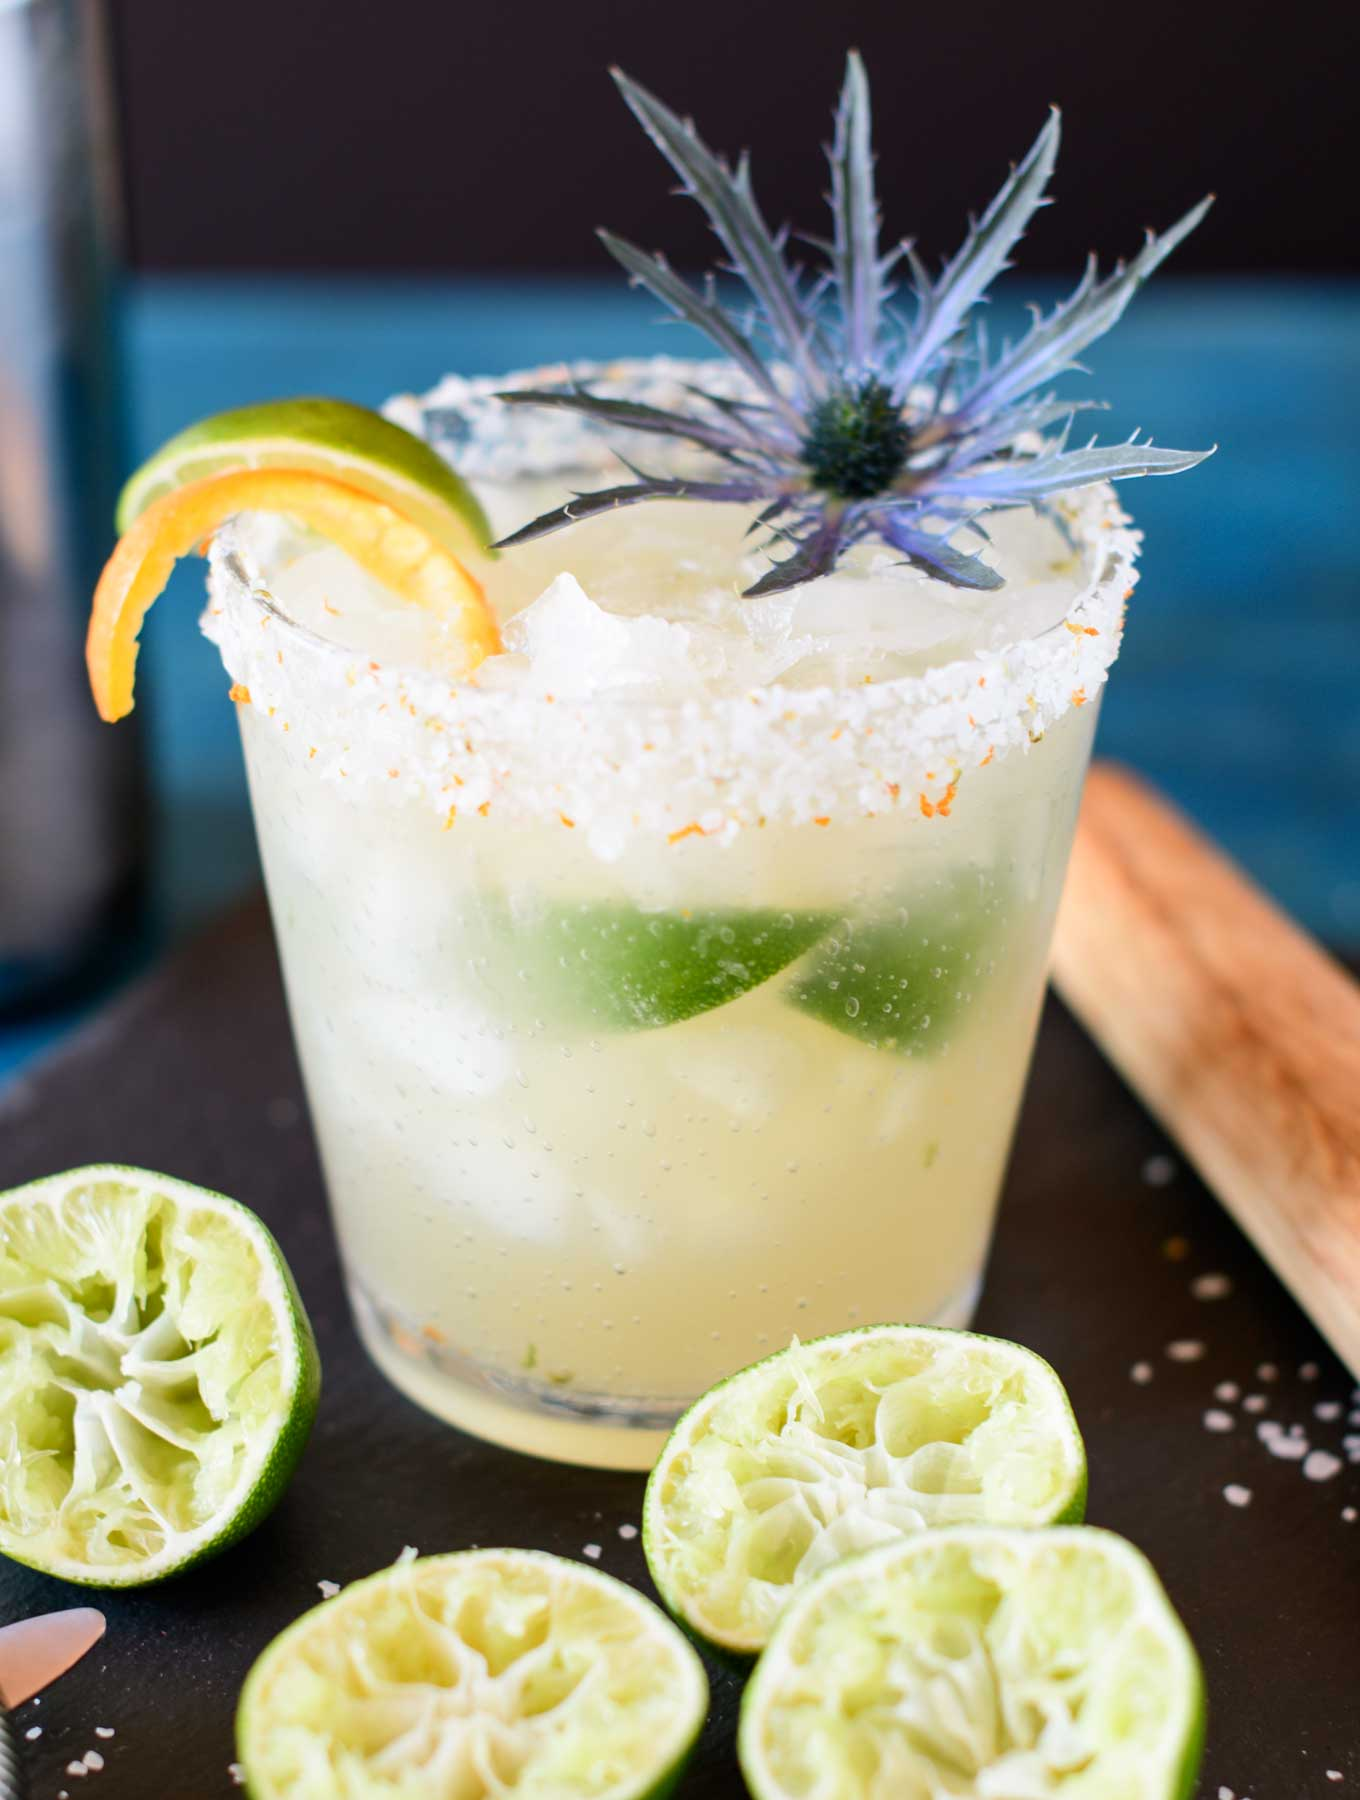 Brazilian margarita with muddled limes